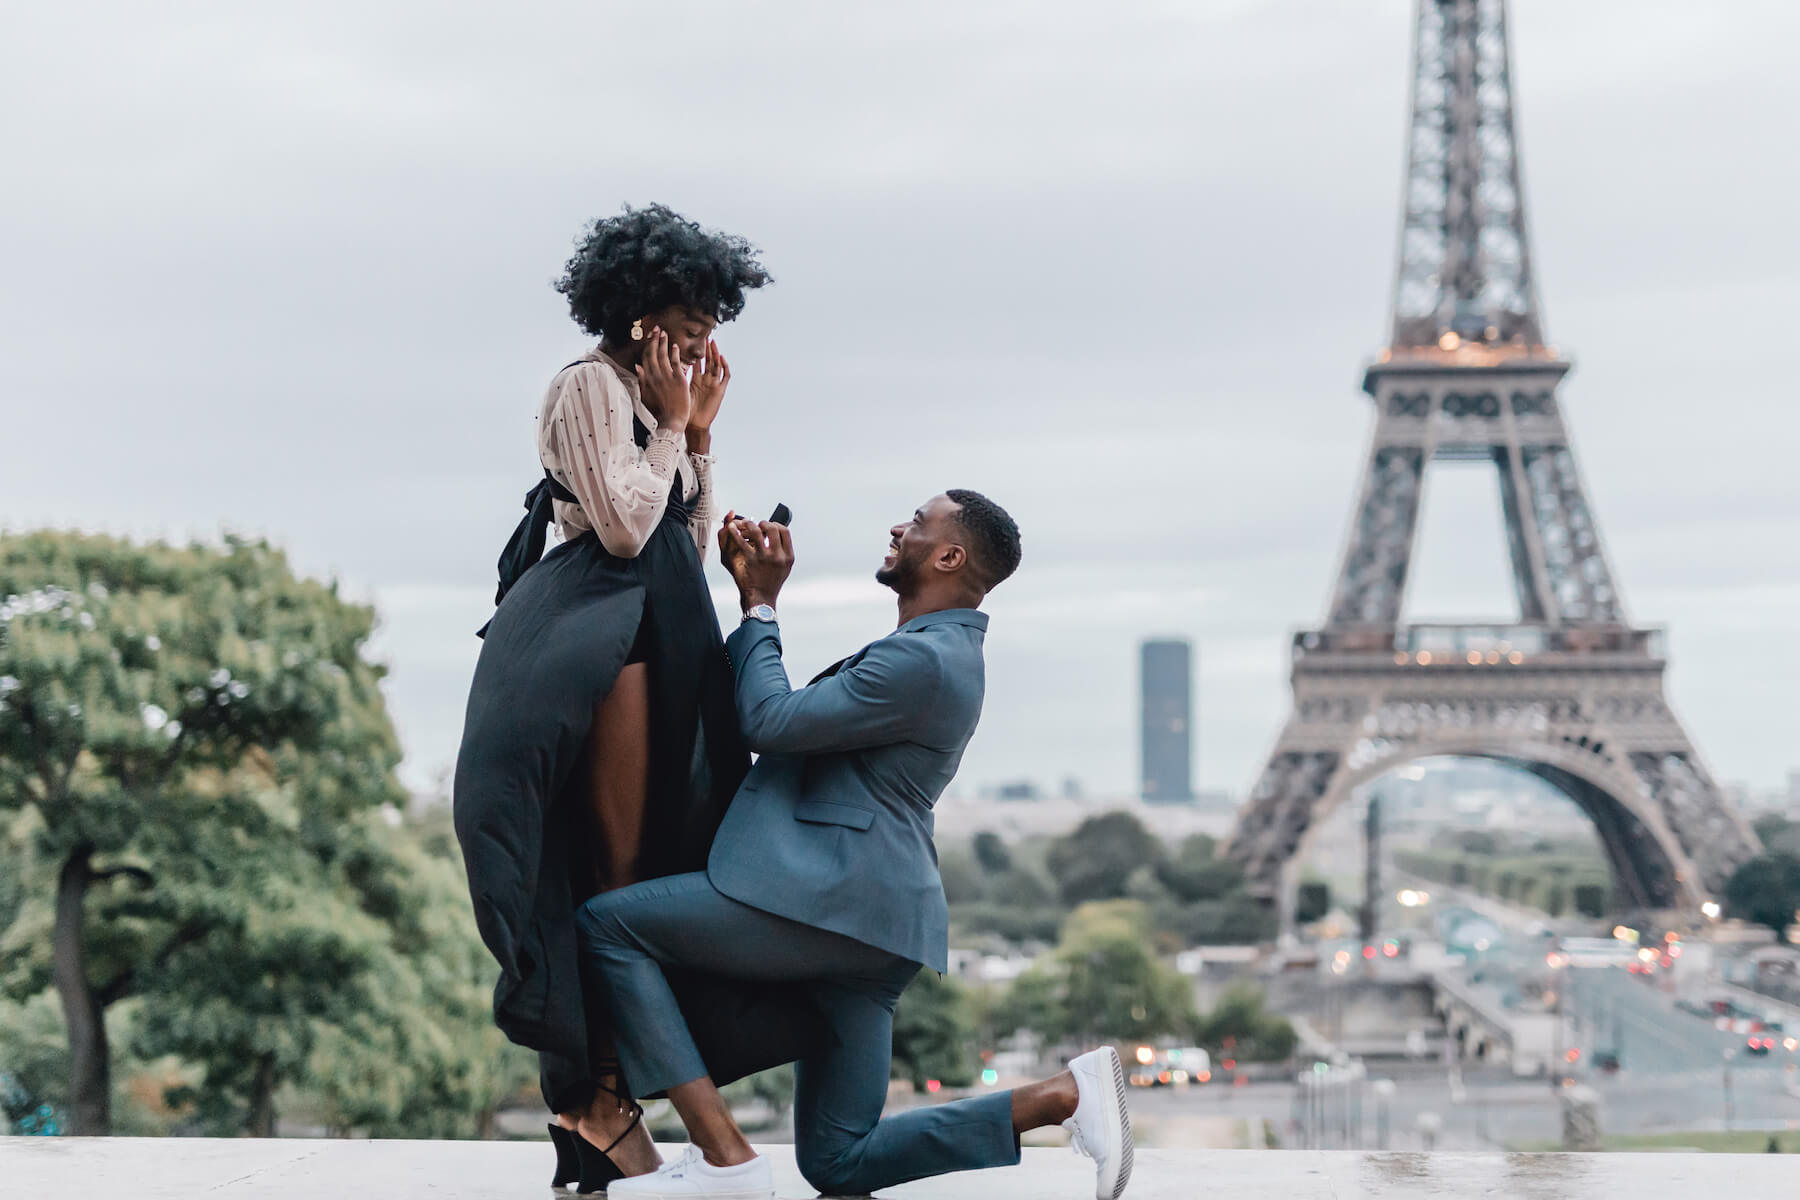 Man is proposing to the woman in front of the Eiffel tower in Paris, the man and woman are both dressed up in semi-formal attire